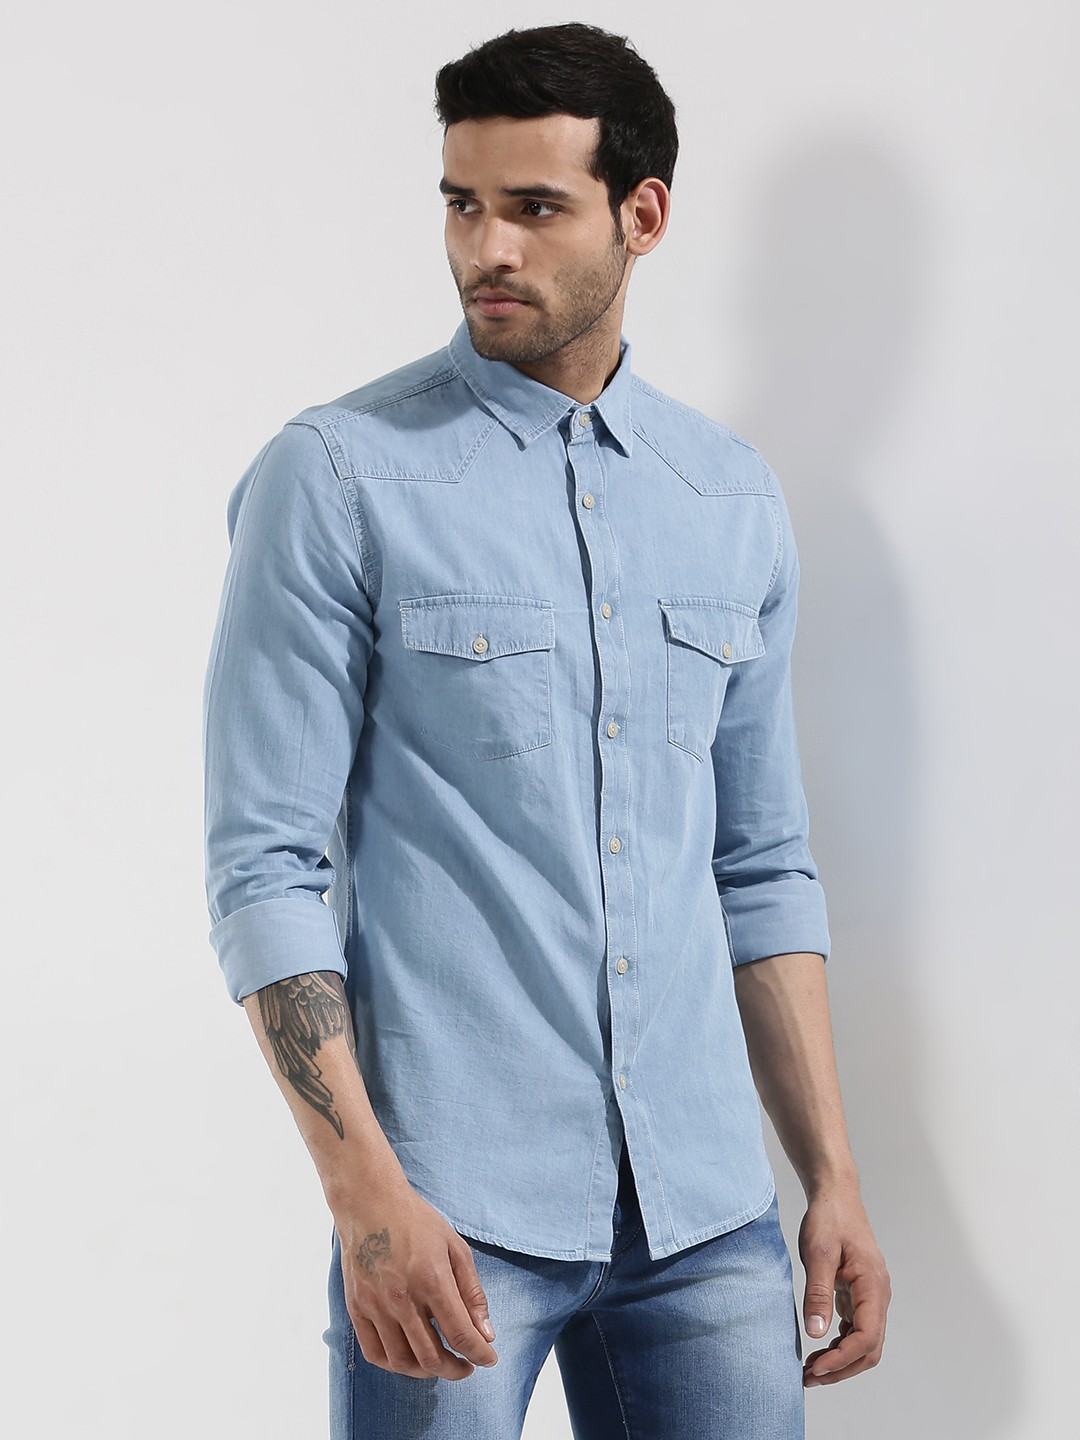 b1c4b2320d Levis Denim Shirt India Online | Top Mode Depot